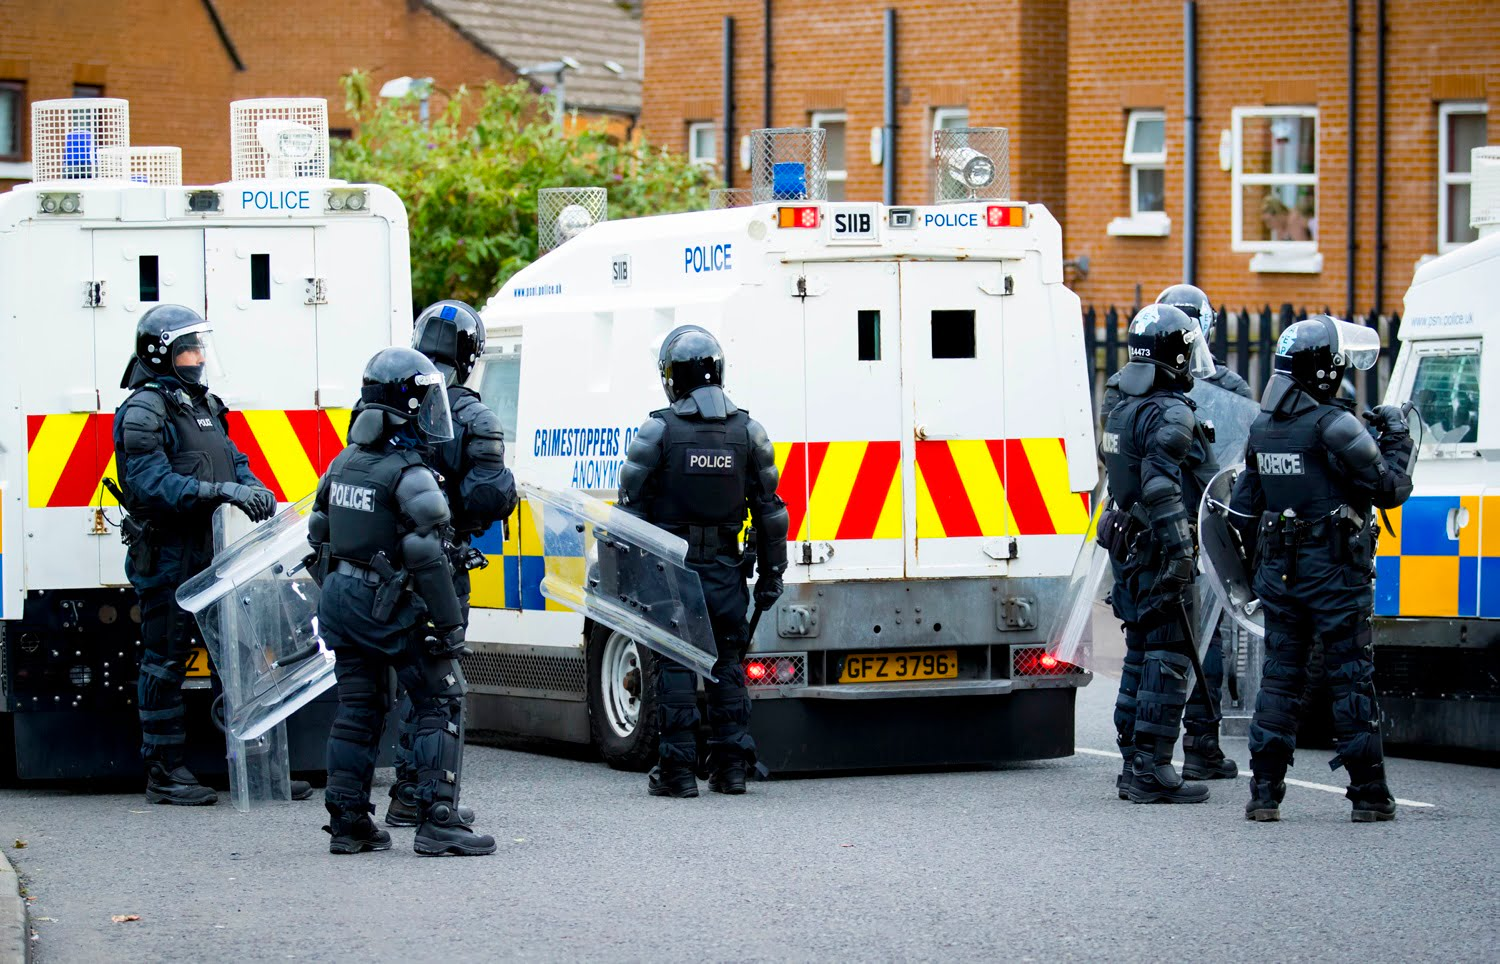 Belfast man accused of Markets public disorder has charges withdrawn